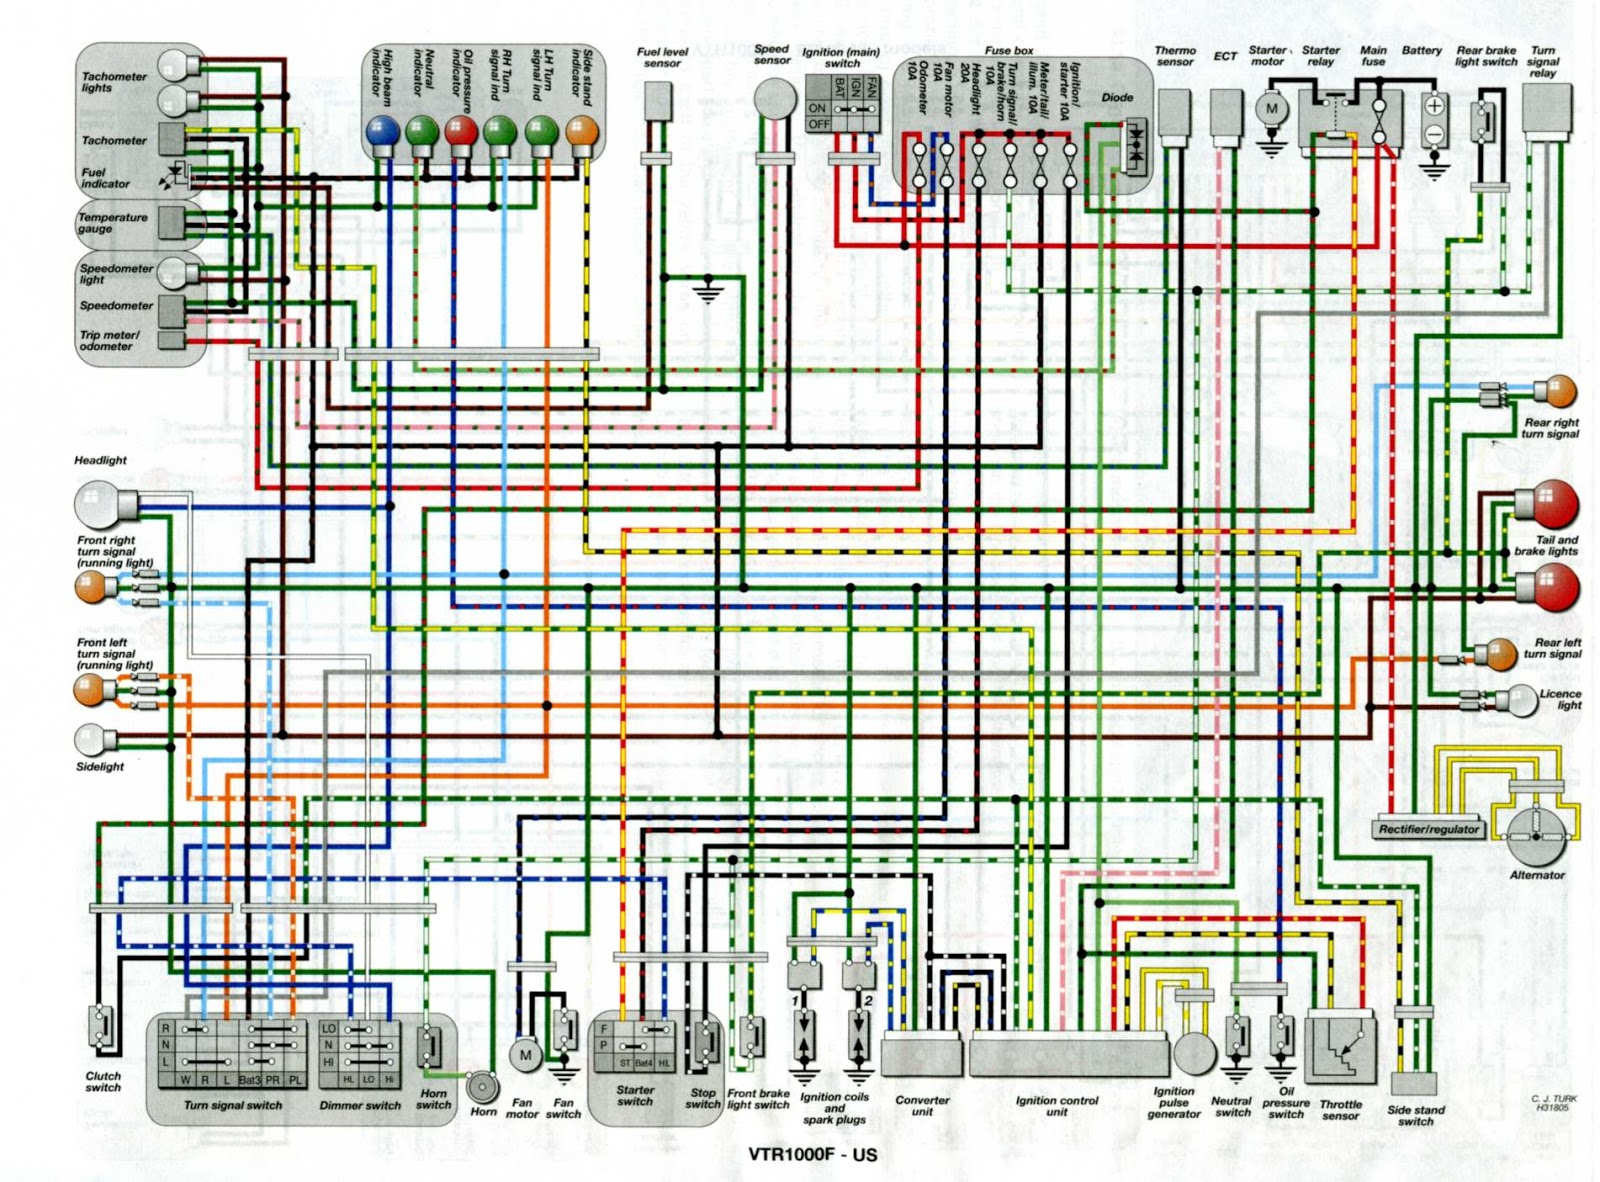 Wire Schematic 2005 Cbr1000rr Wiring Diagram For 2010 Toyota Camry Air Bag Tukune Jeanjaures37 Fr